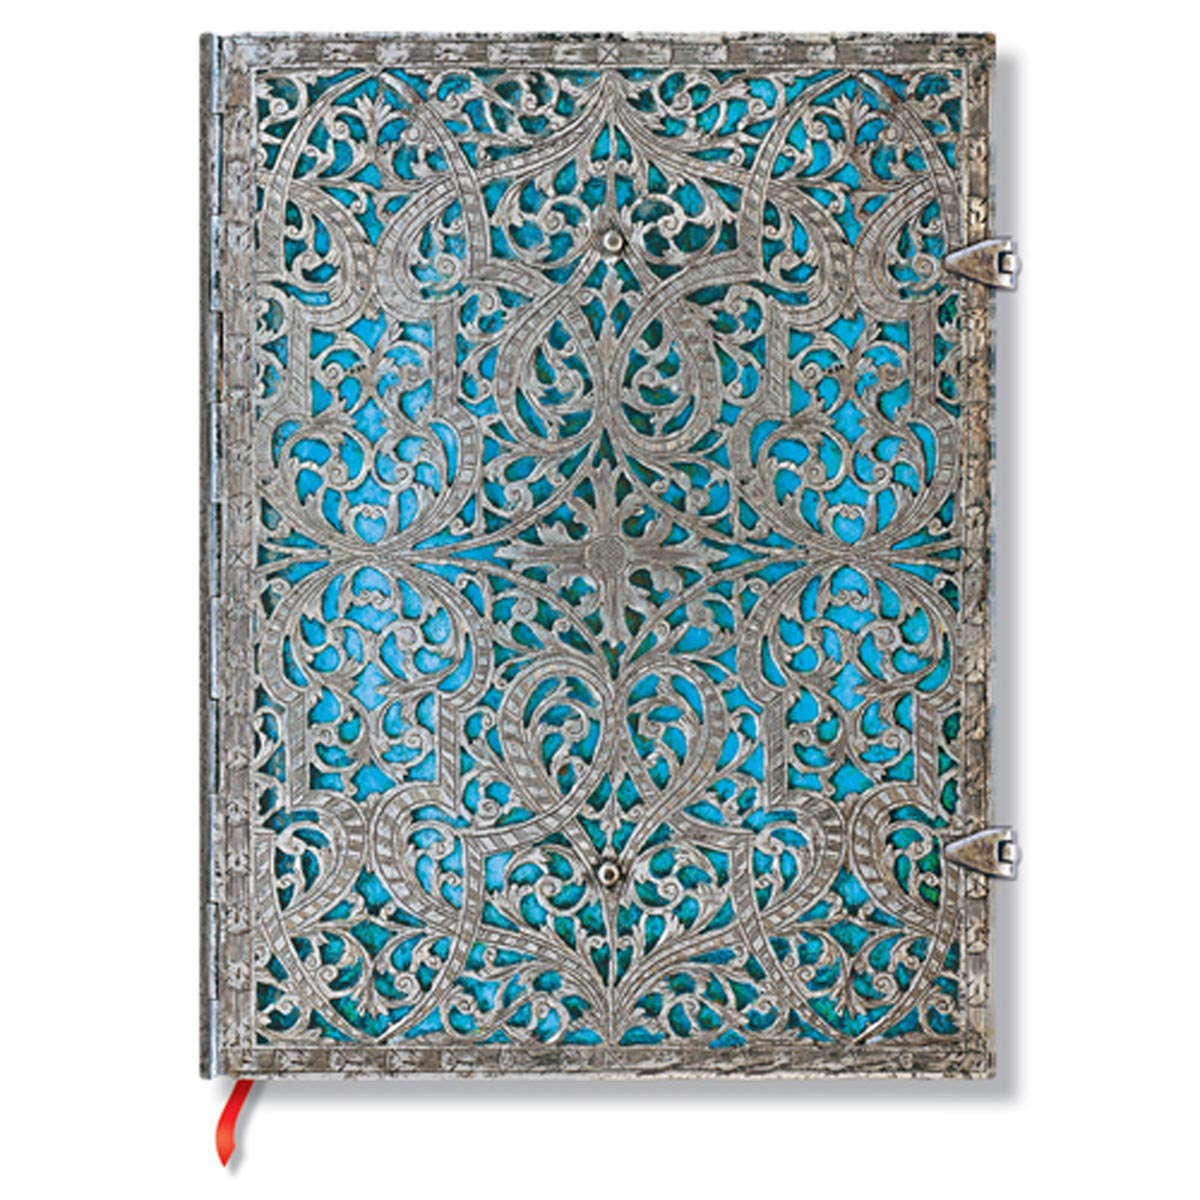 "Paperblanks Silver Filigree Maya Blue 7""x9"" Ultra lined Journal"